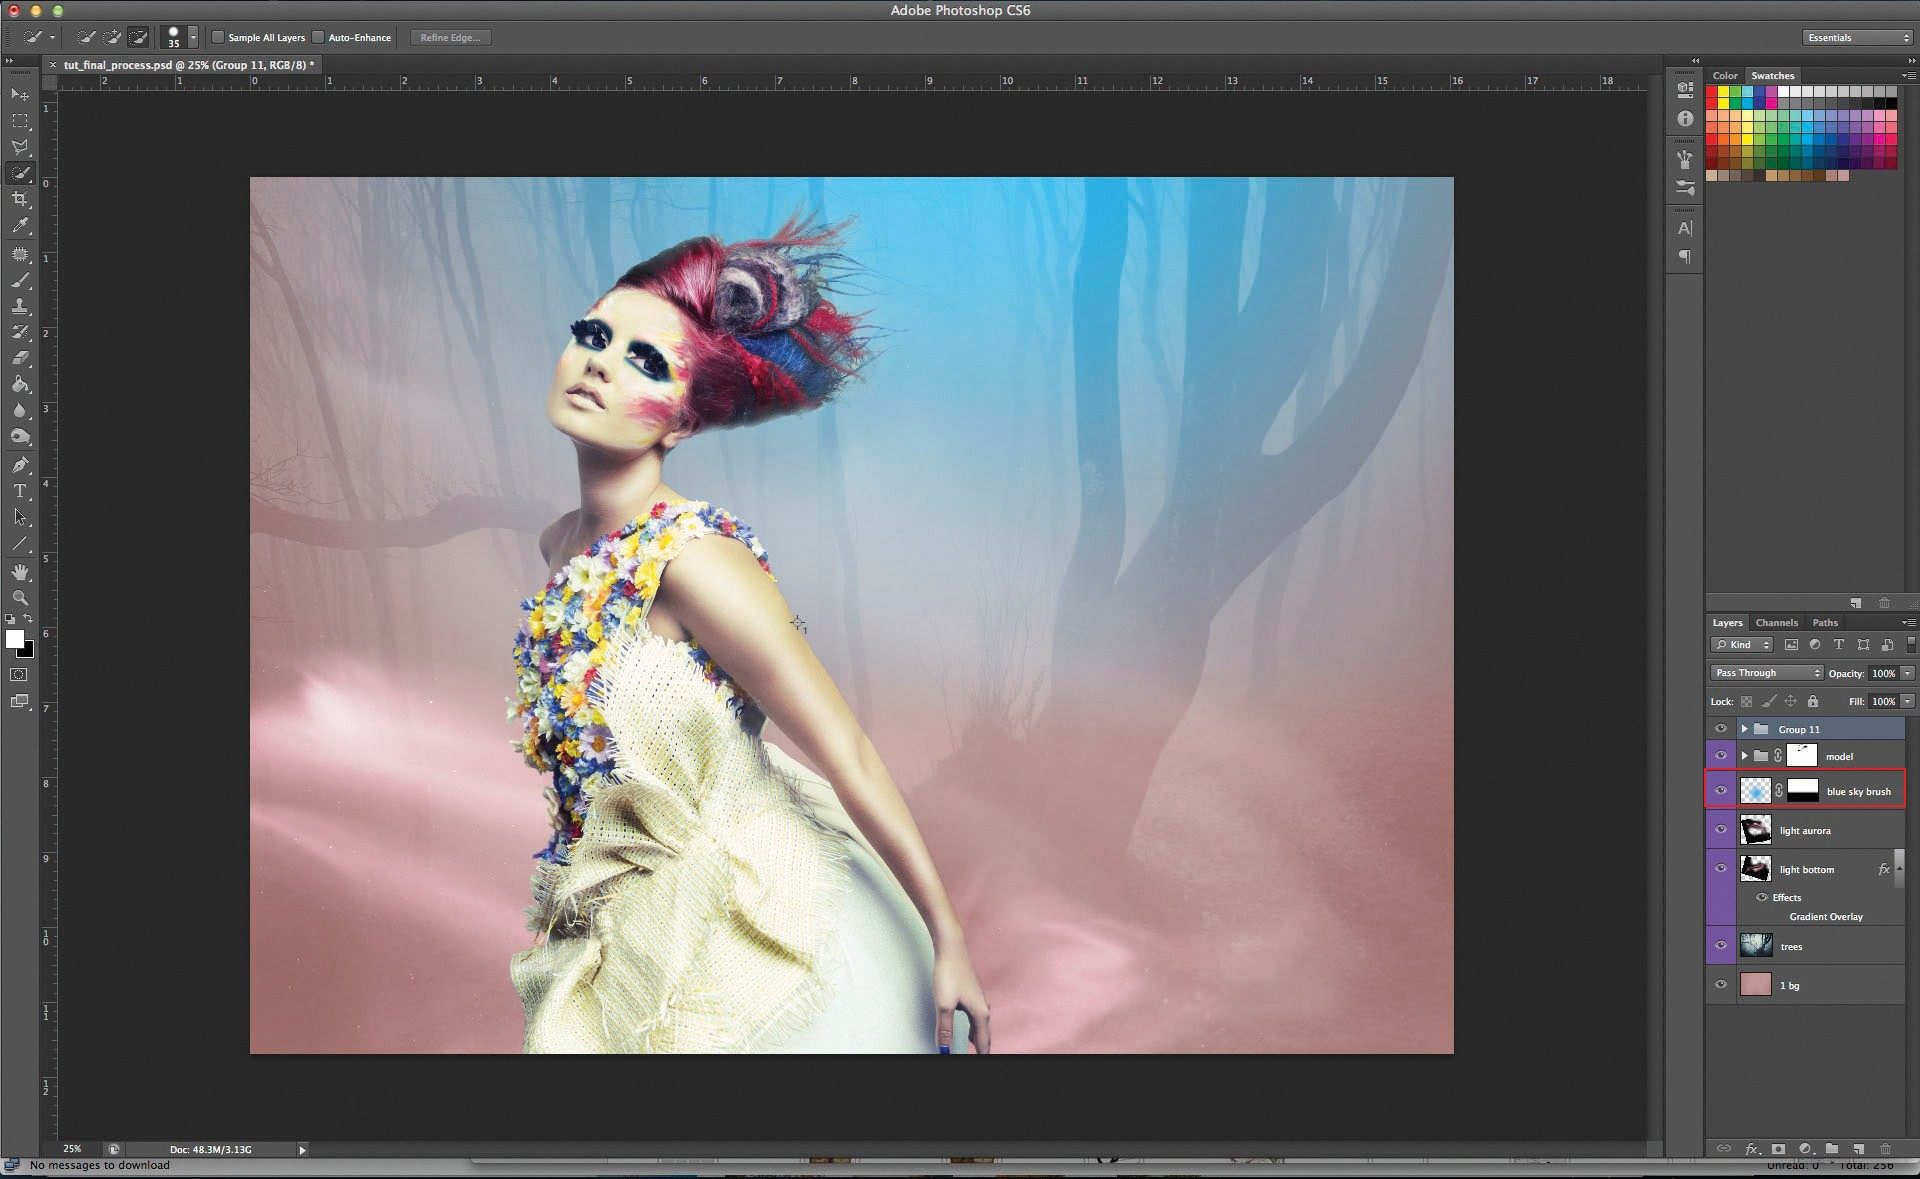 Adobe photoshop cs6 как сделать с фоном